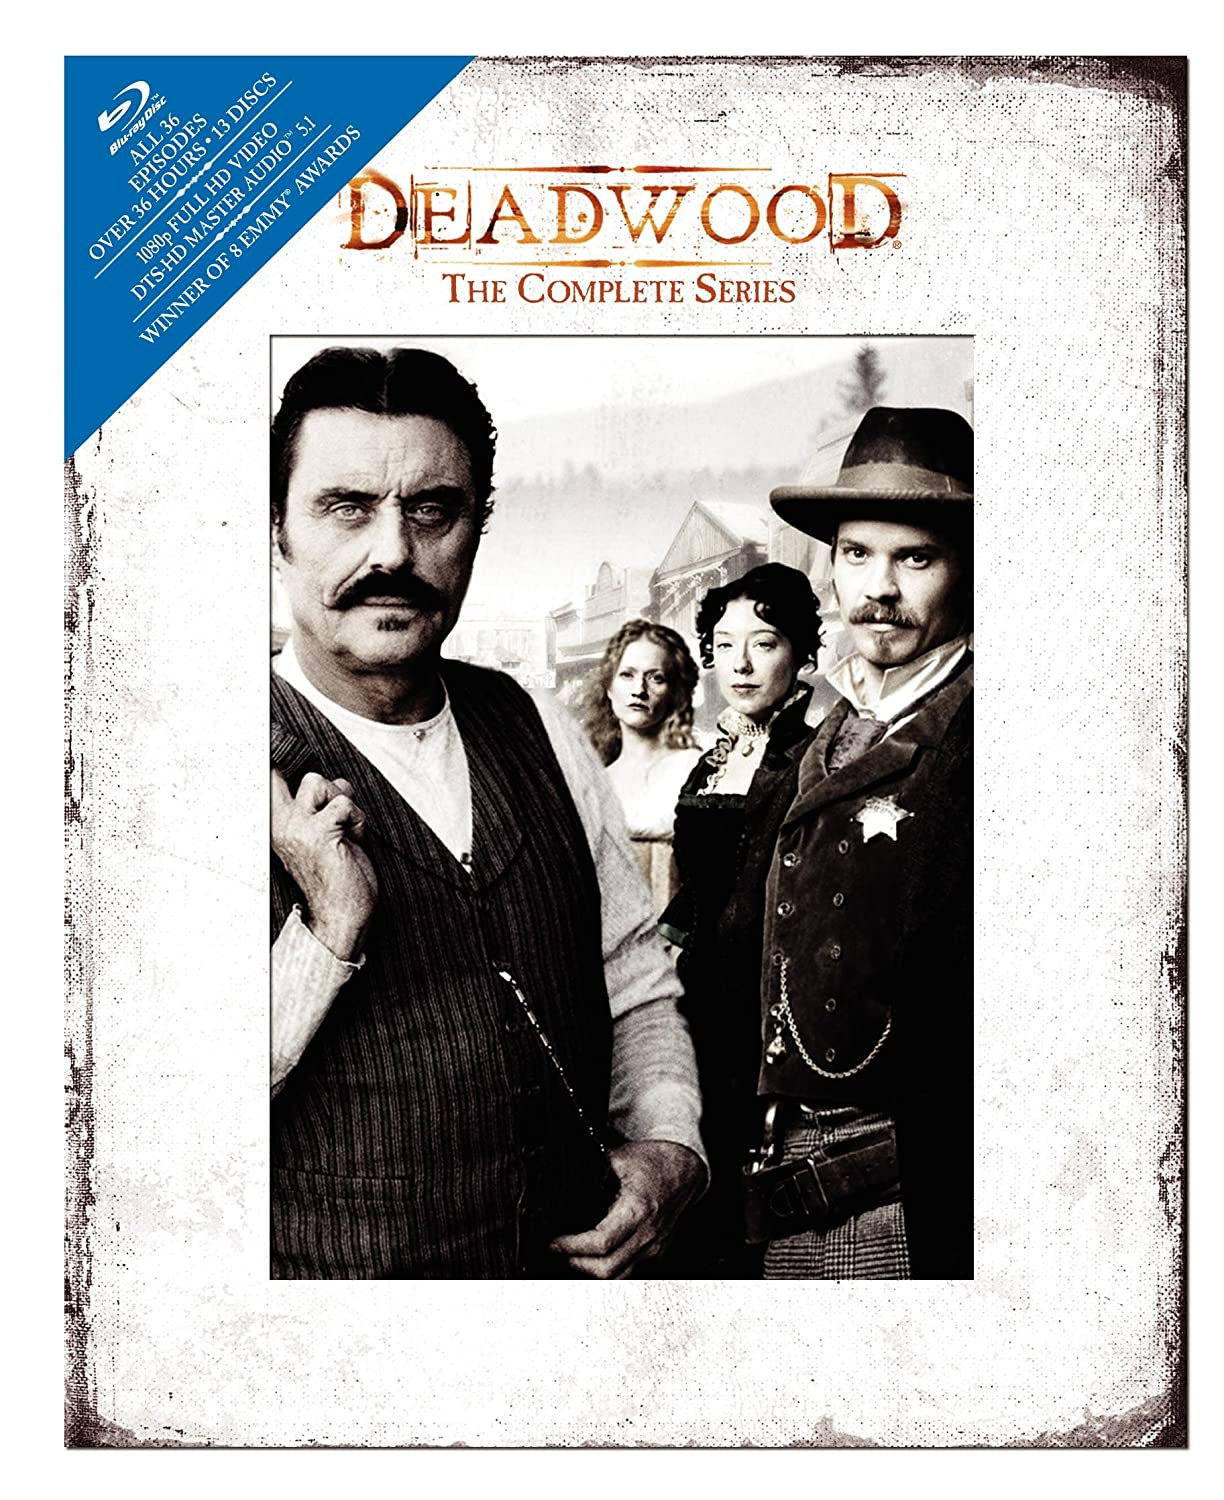 Deadwood [videorecording]